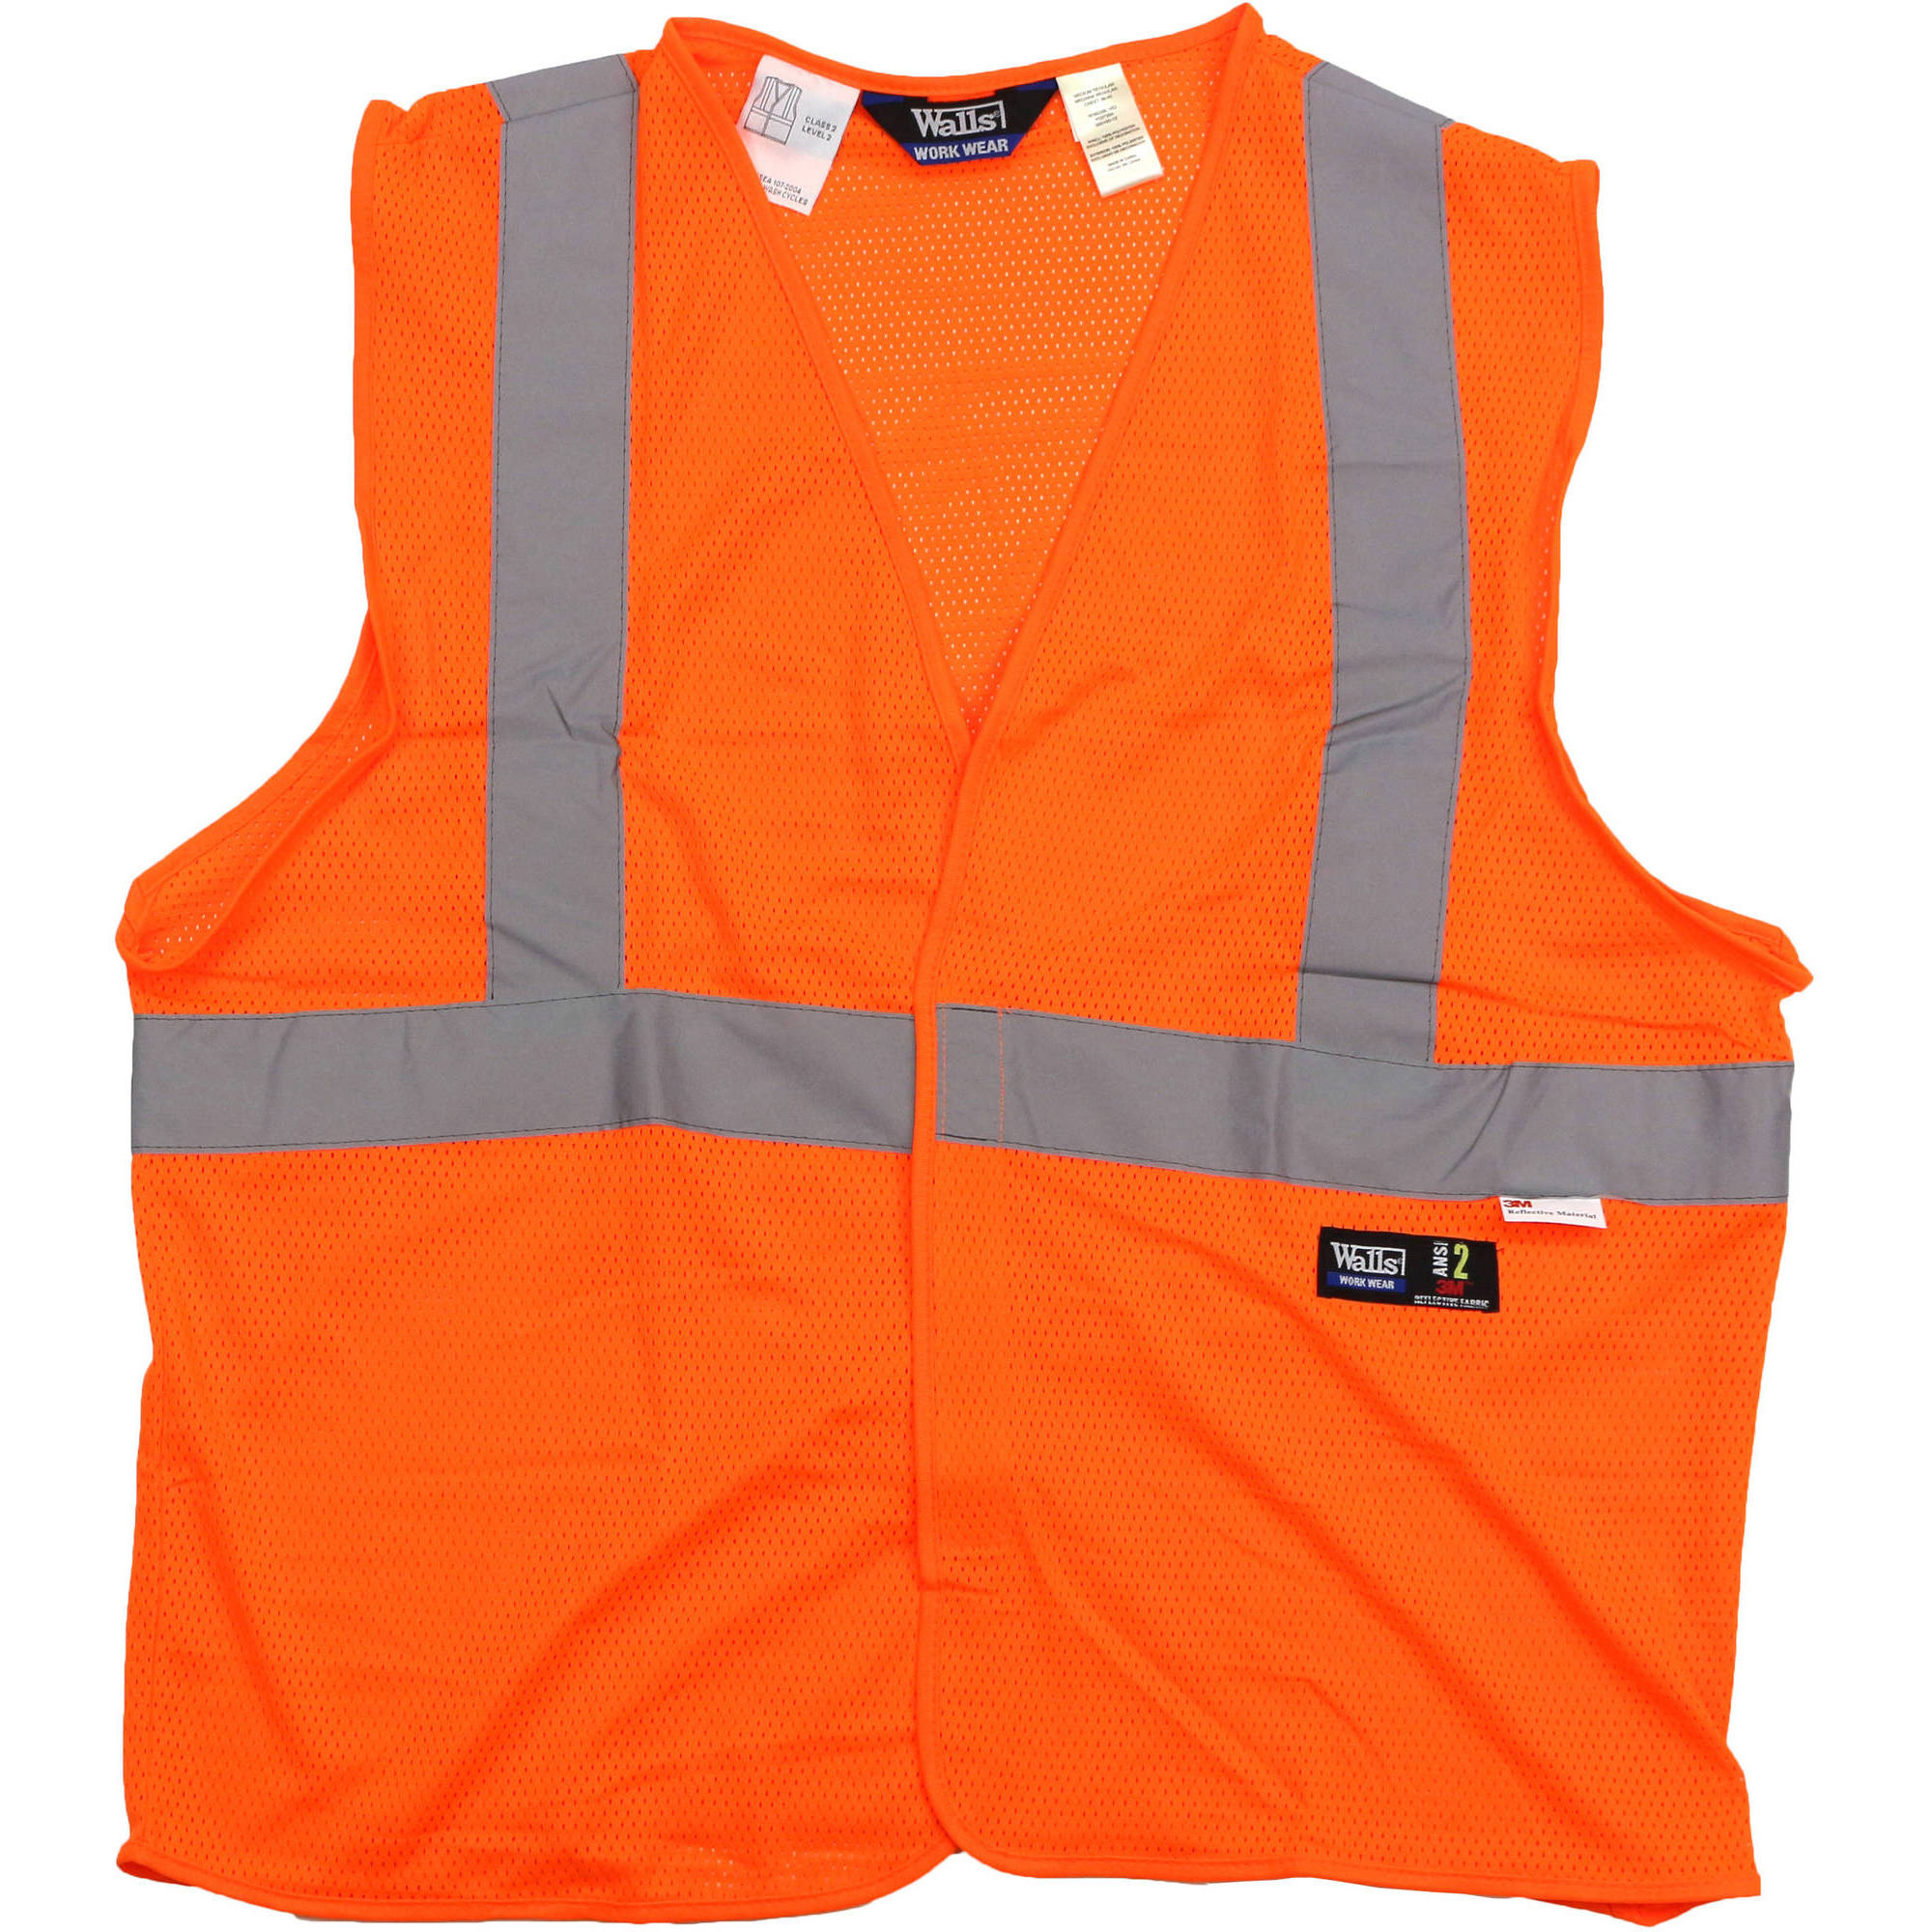 Walls - Big Men's ANSI 2 High Visibility Mesh Safety Vest